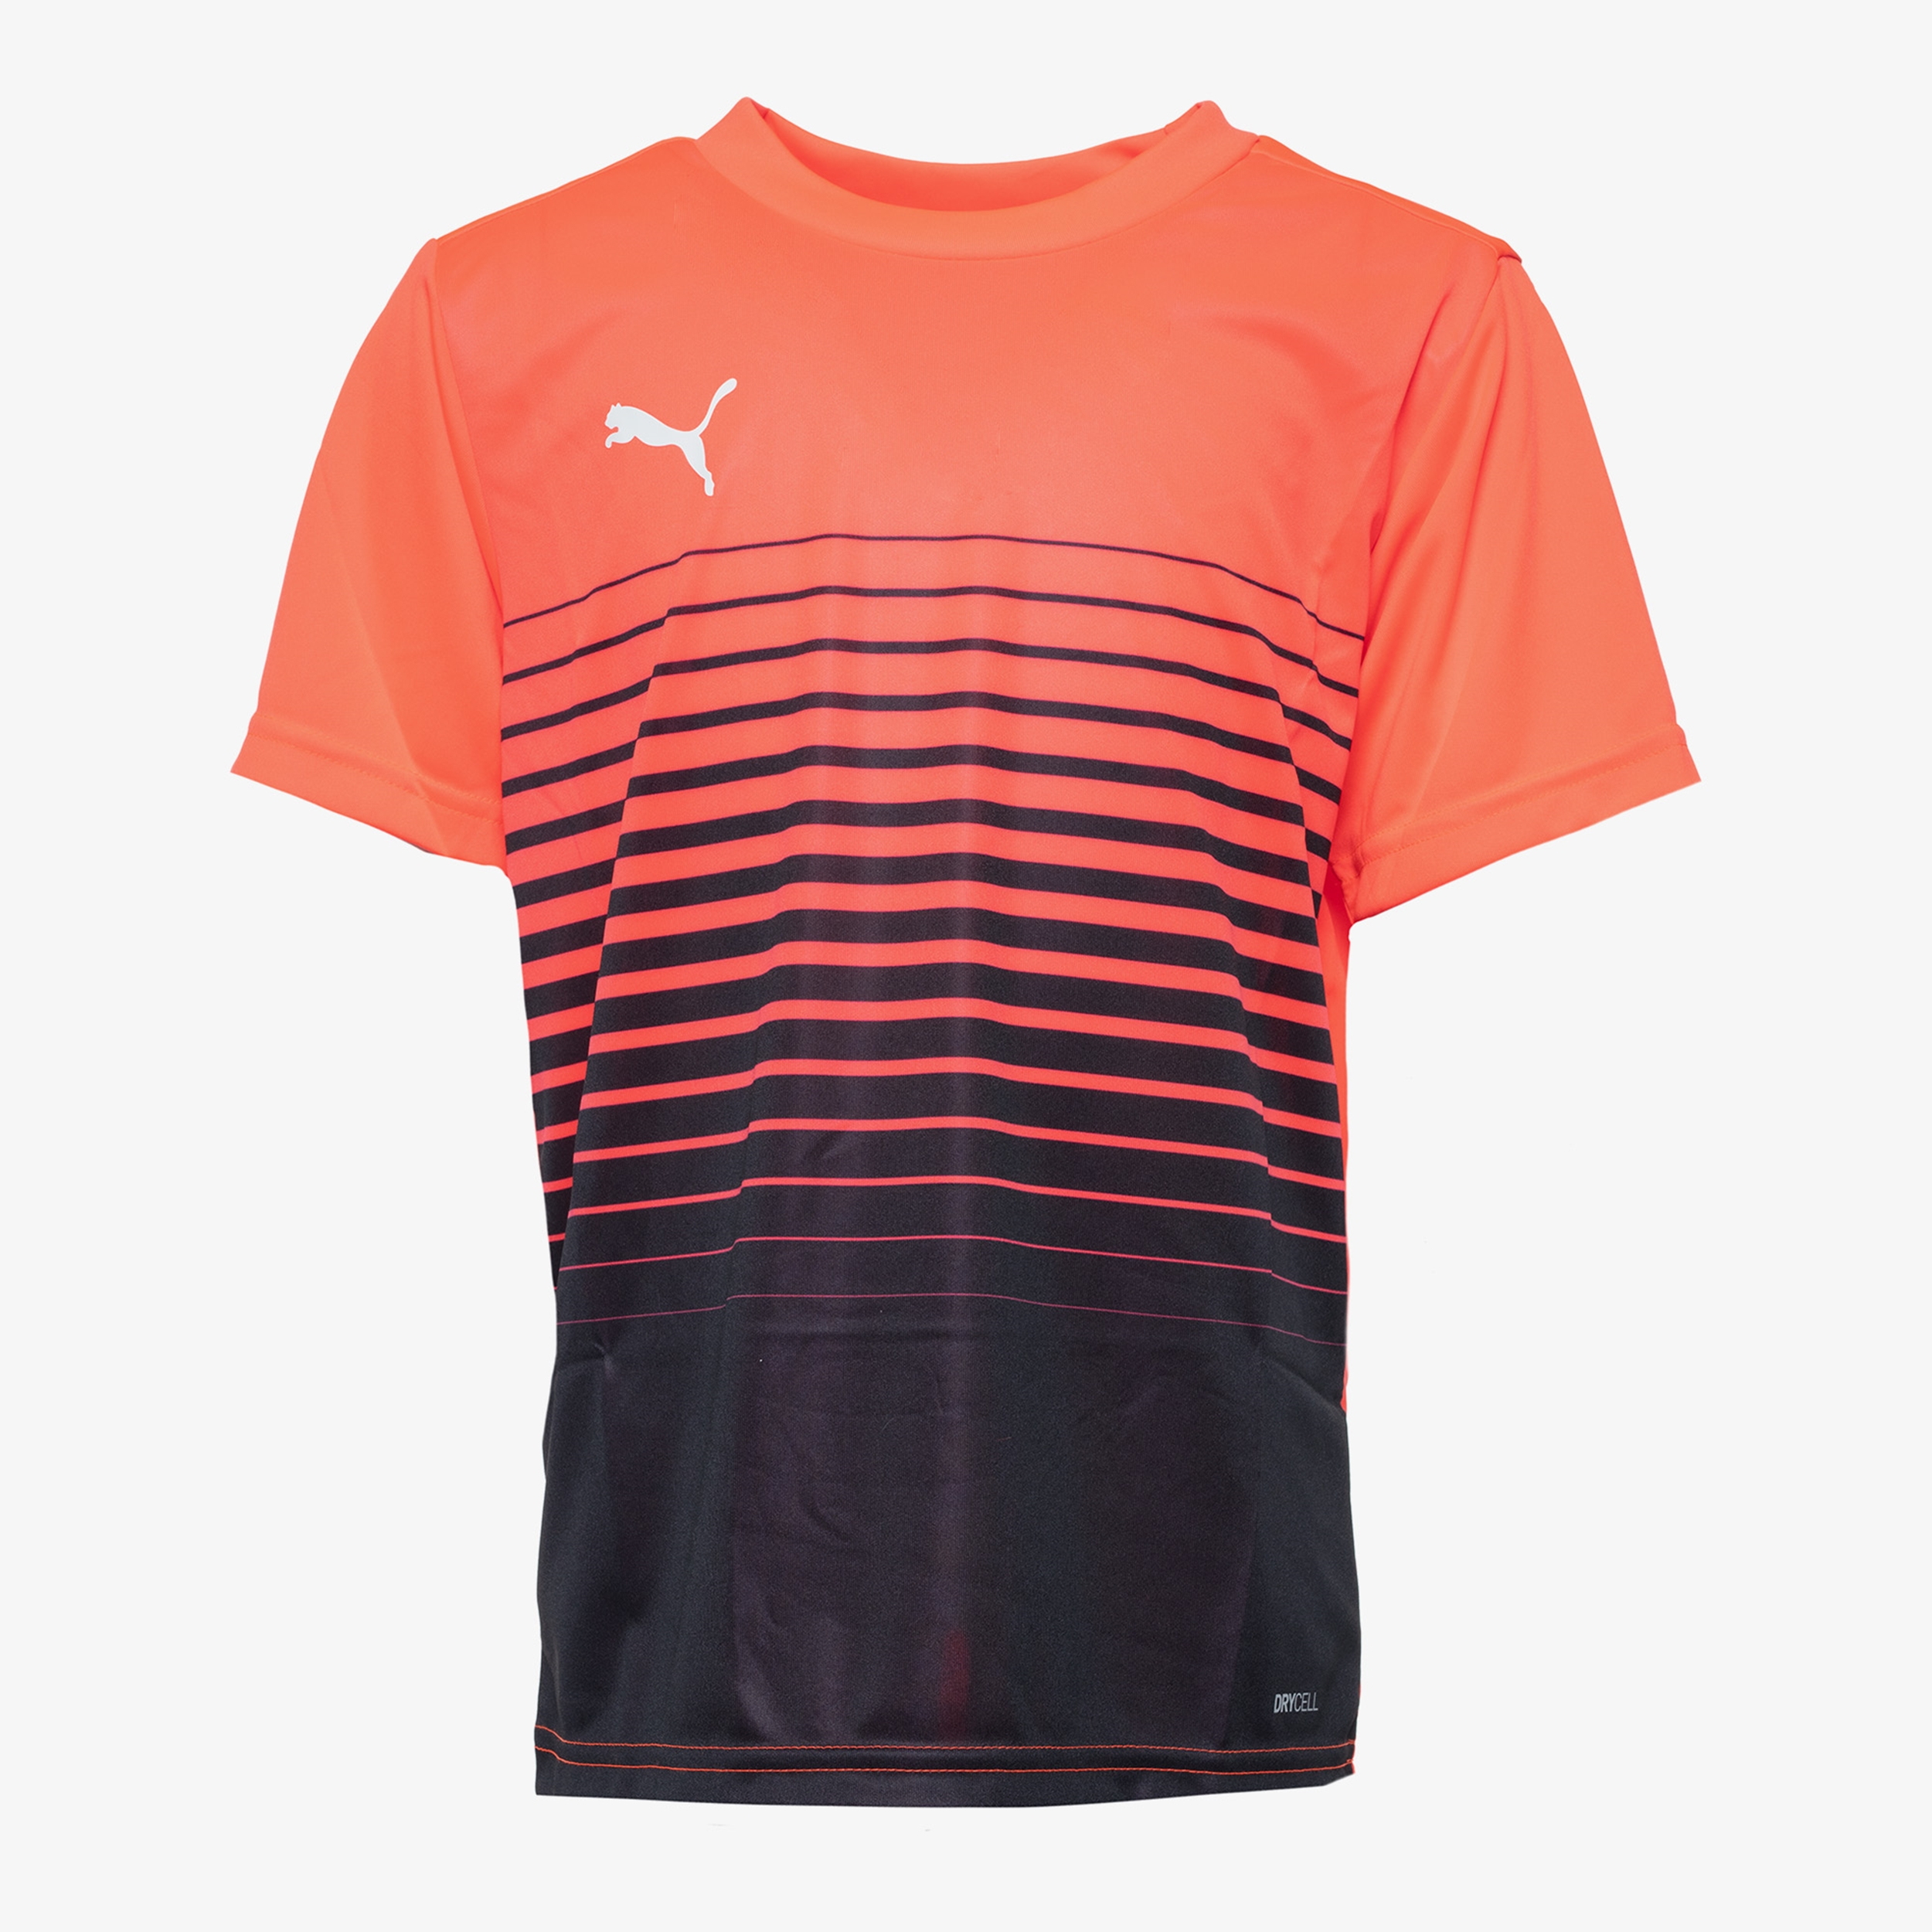 Puma FTBL Play kinder voetbal t shirt | Scapino.nl